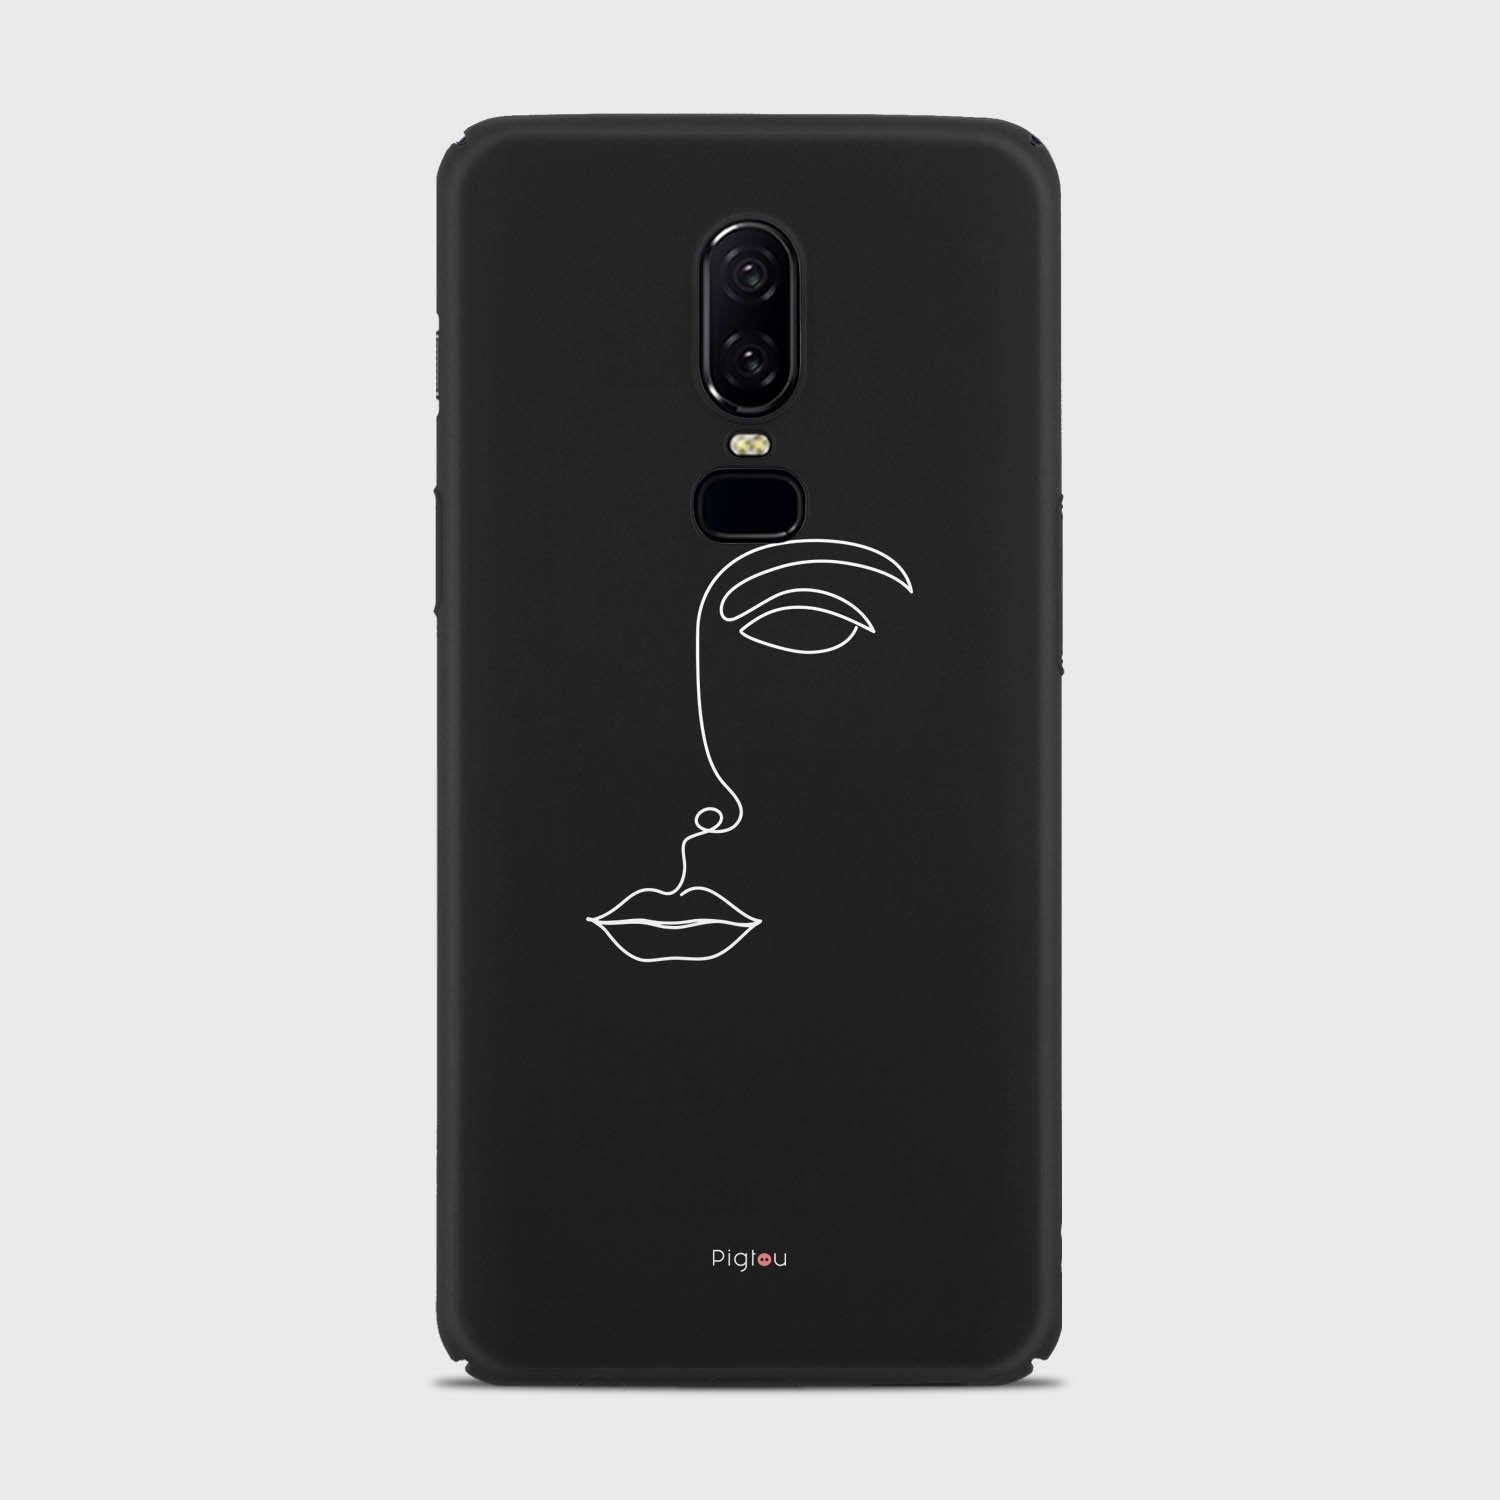 SILHOUETTE FACE Oneplus Z cases | Pigtou